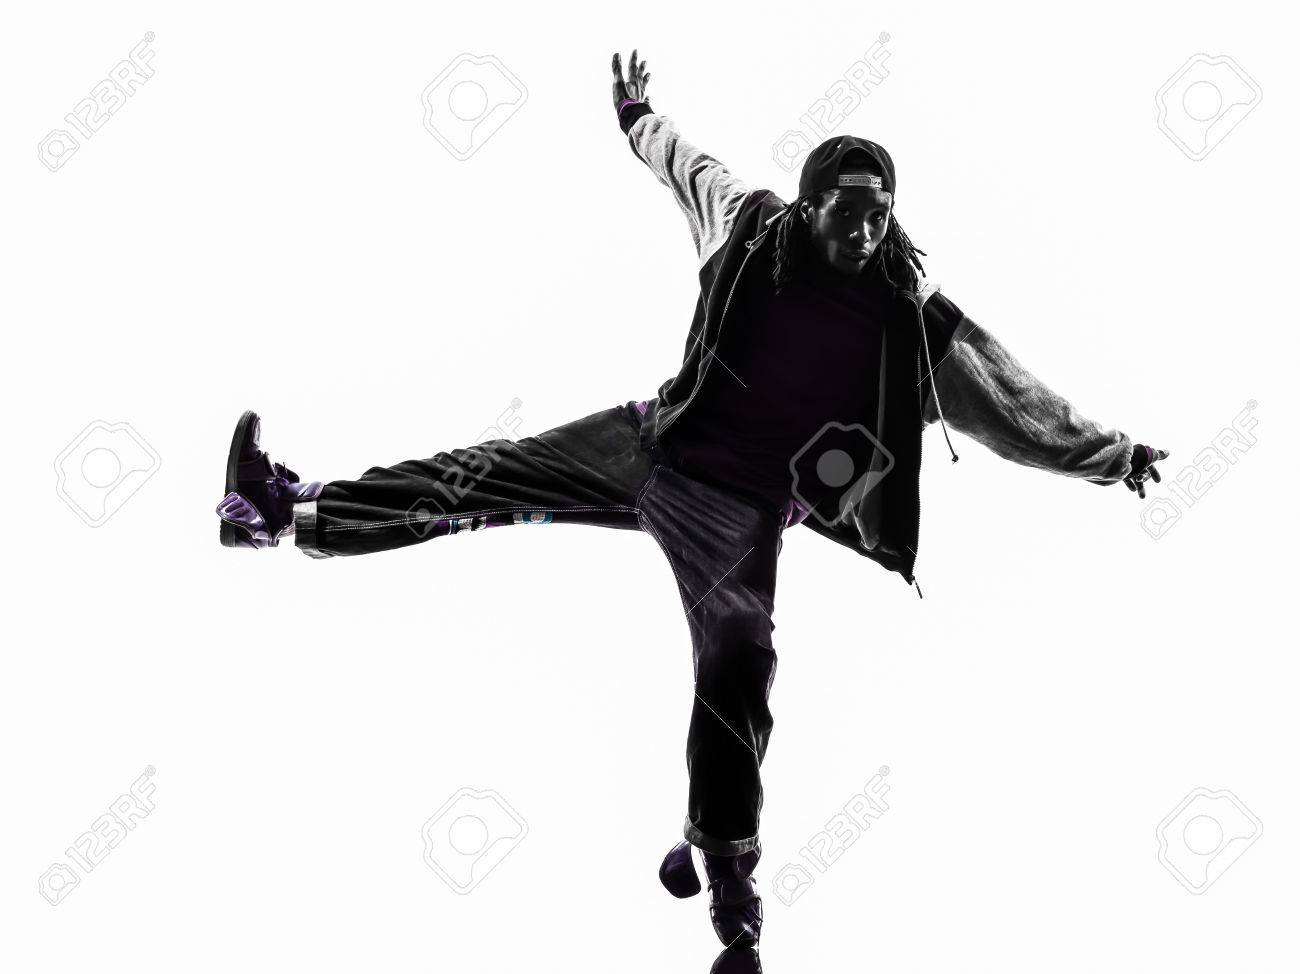 edaac4d4d one hip hop acrobatic break dancer breakdancing young man silhouette white  background Stock Photo - 33278562